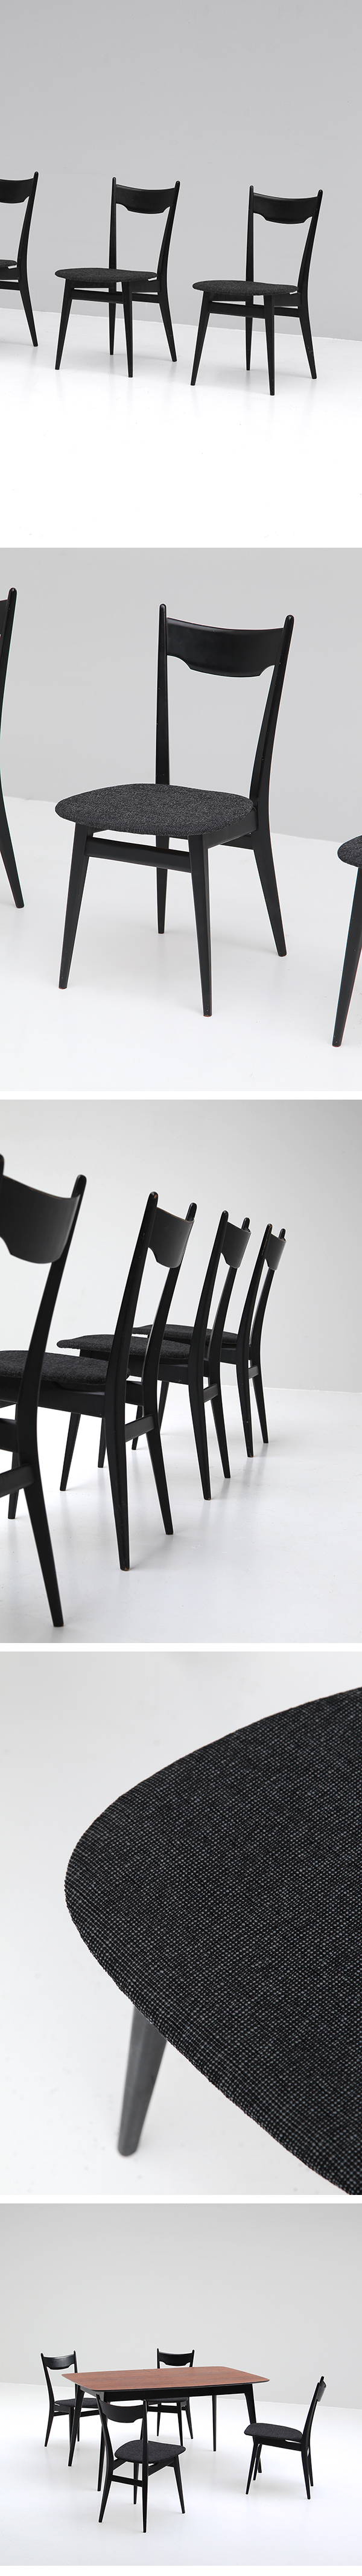 ELEGANT, EBONIZED, DINING CHAIRS, Alfred Hendrickx